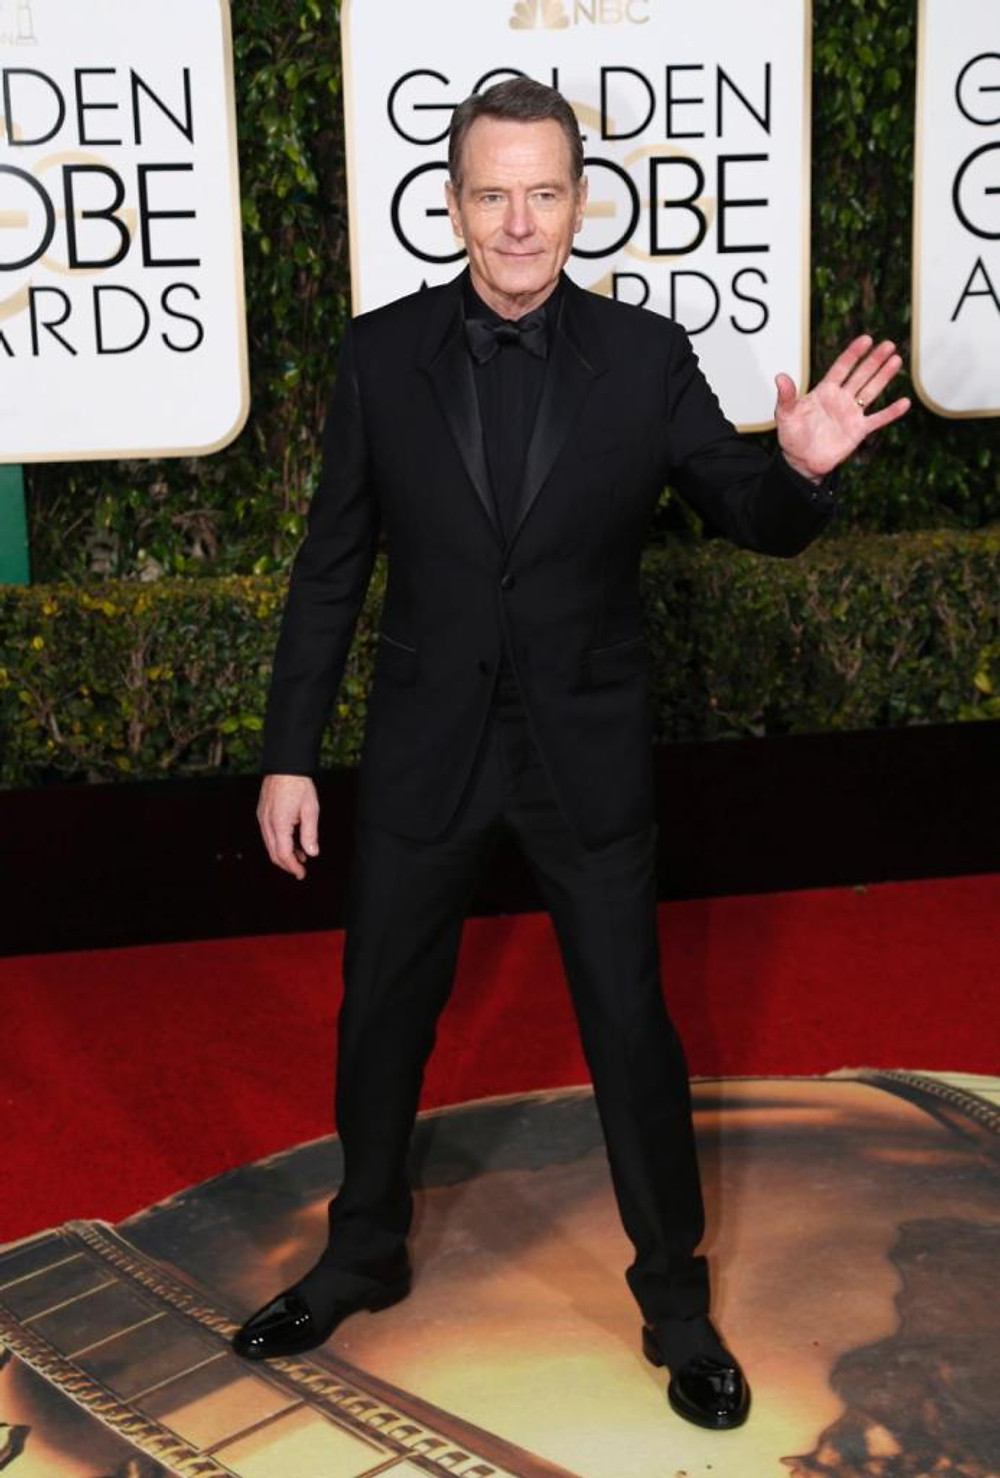 Actor Bryan Cranston arrives at the 73rd Golden Globe Awards in Beverly Hills, California January 10, 2016